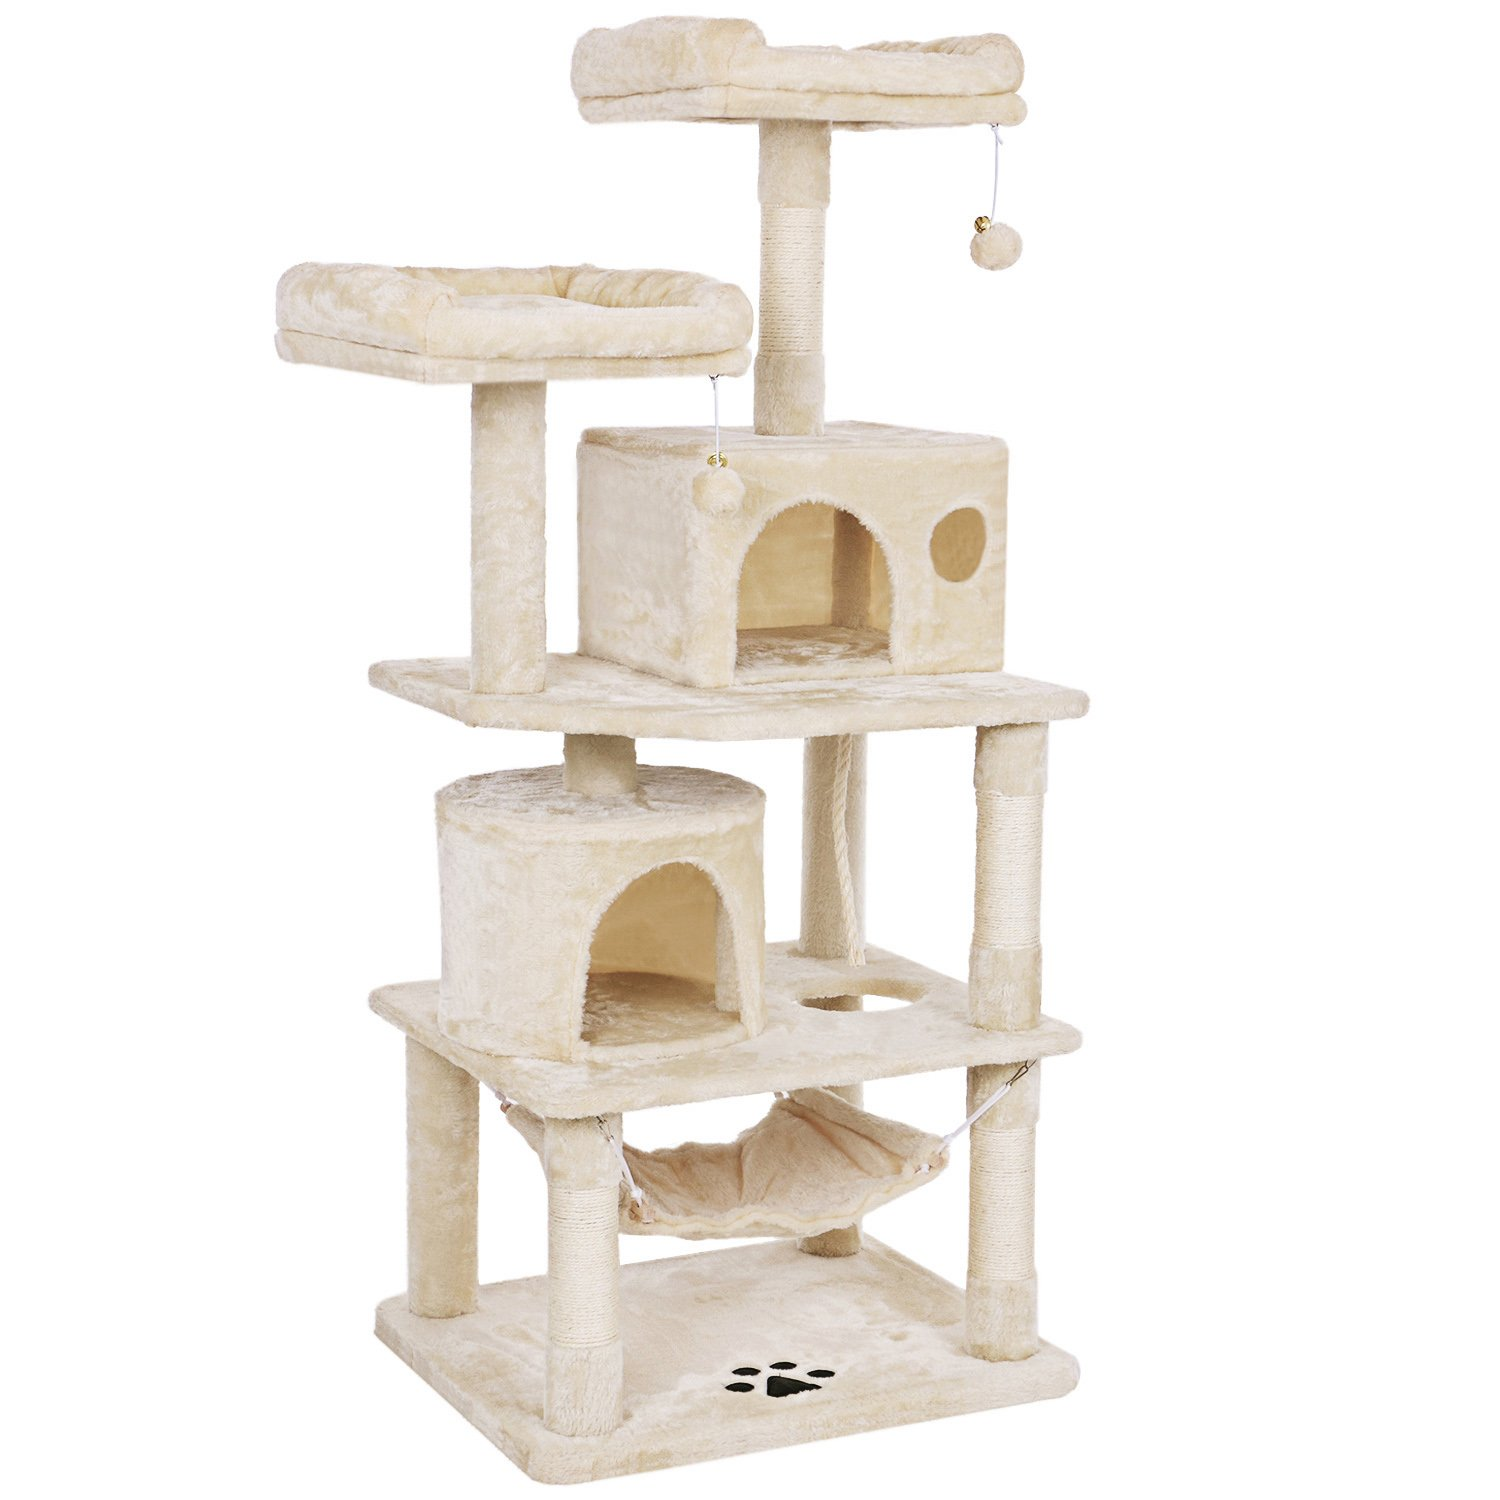 BEWISHOME Cat Tree Condo Furniture Kitten Activity Tower Pet Kitty Play House with Scratching Posts Perches Hammock Beige 57'' MMJ01M